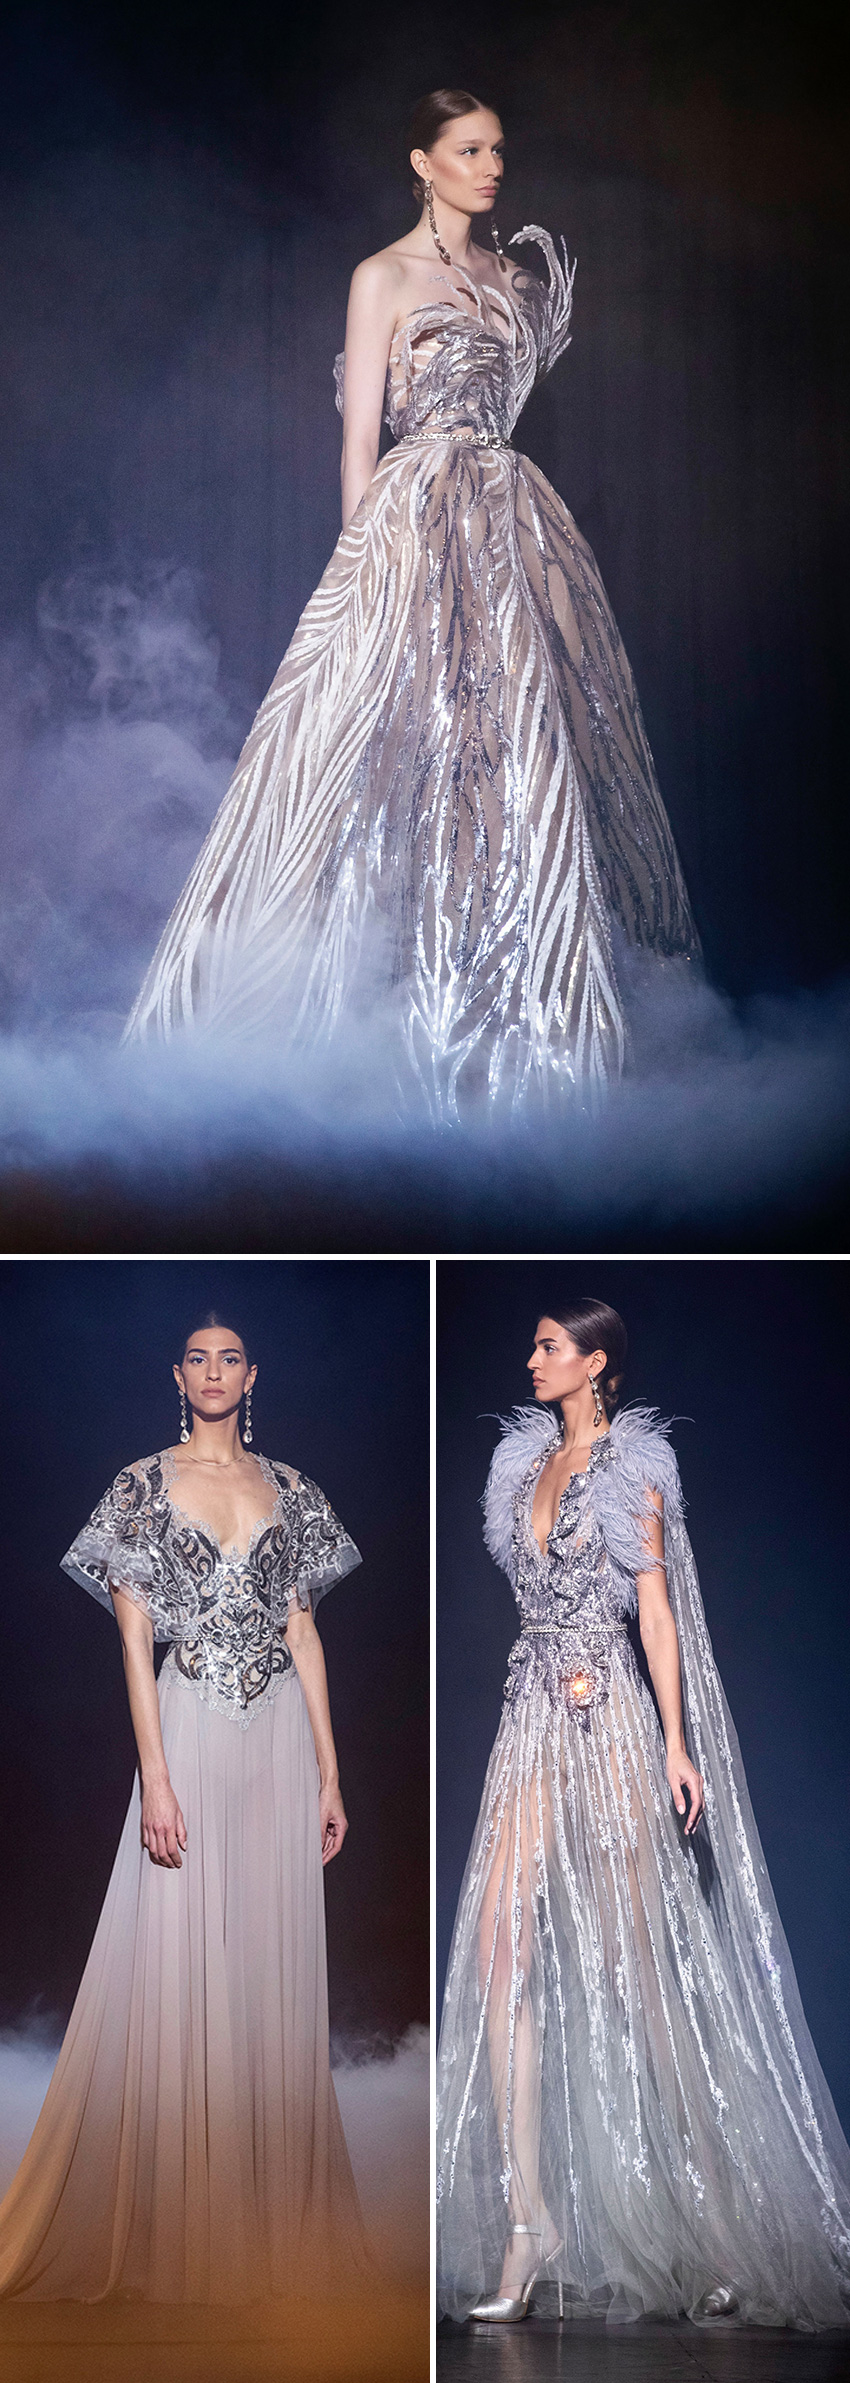 Elie Saab haute Couture Spring Summer 2021 is Theater of Dreams in Perfect Wedding Magazine